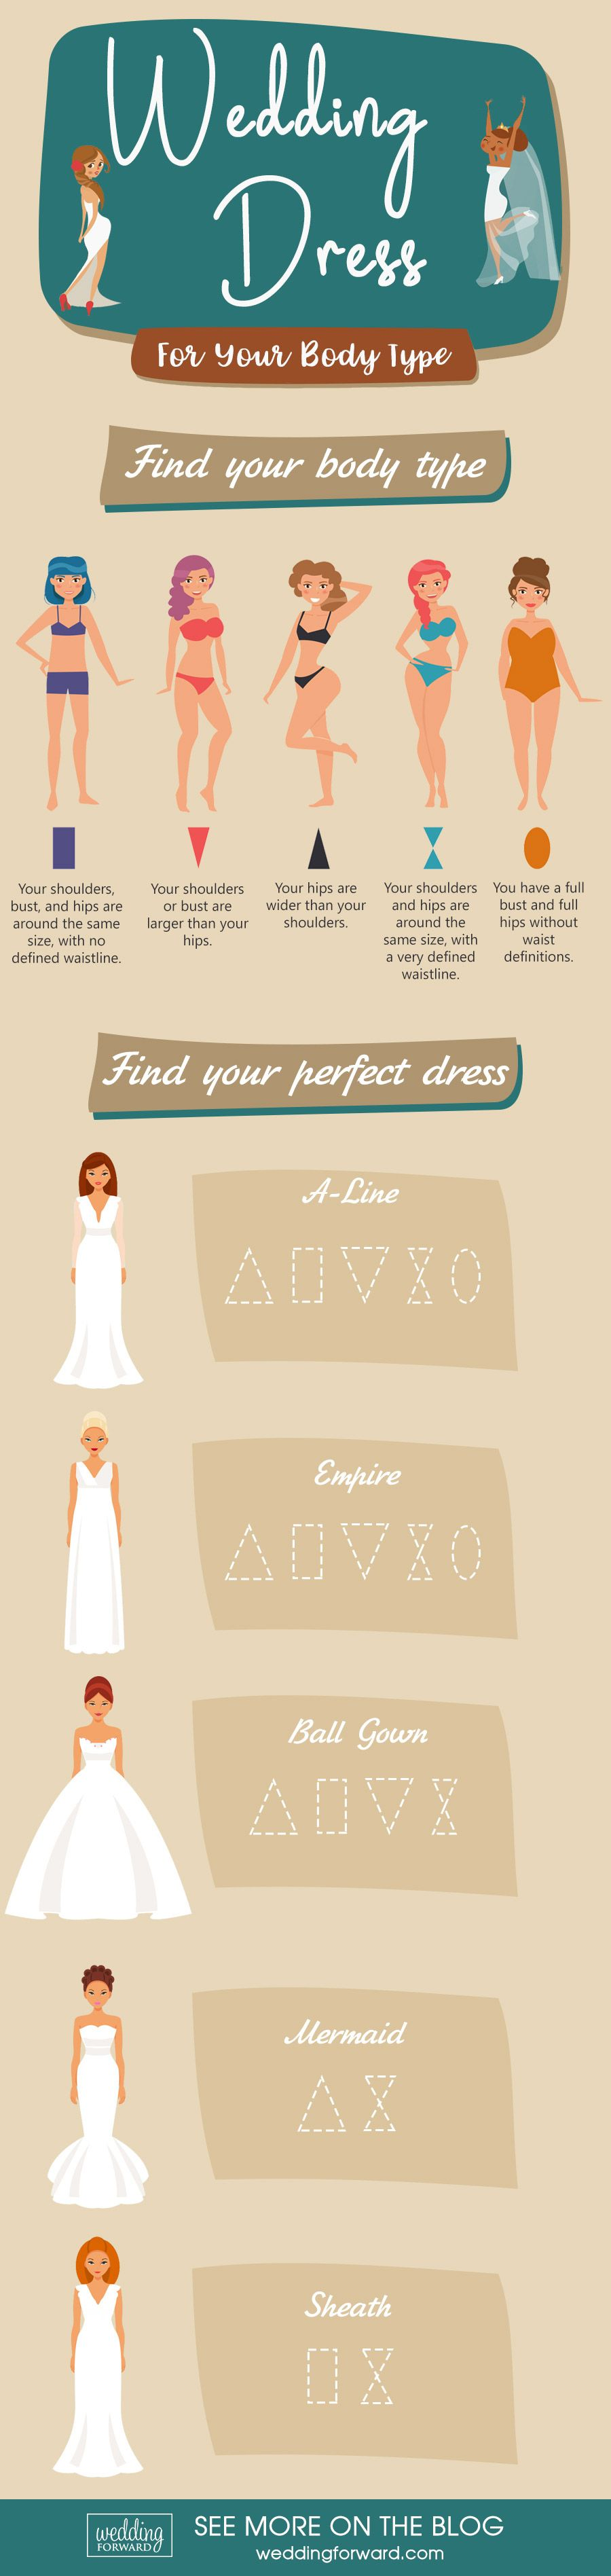 Choosing the right wedding dress for your body type see more